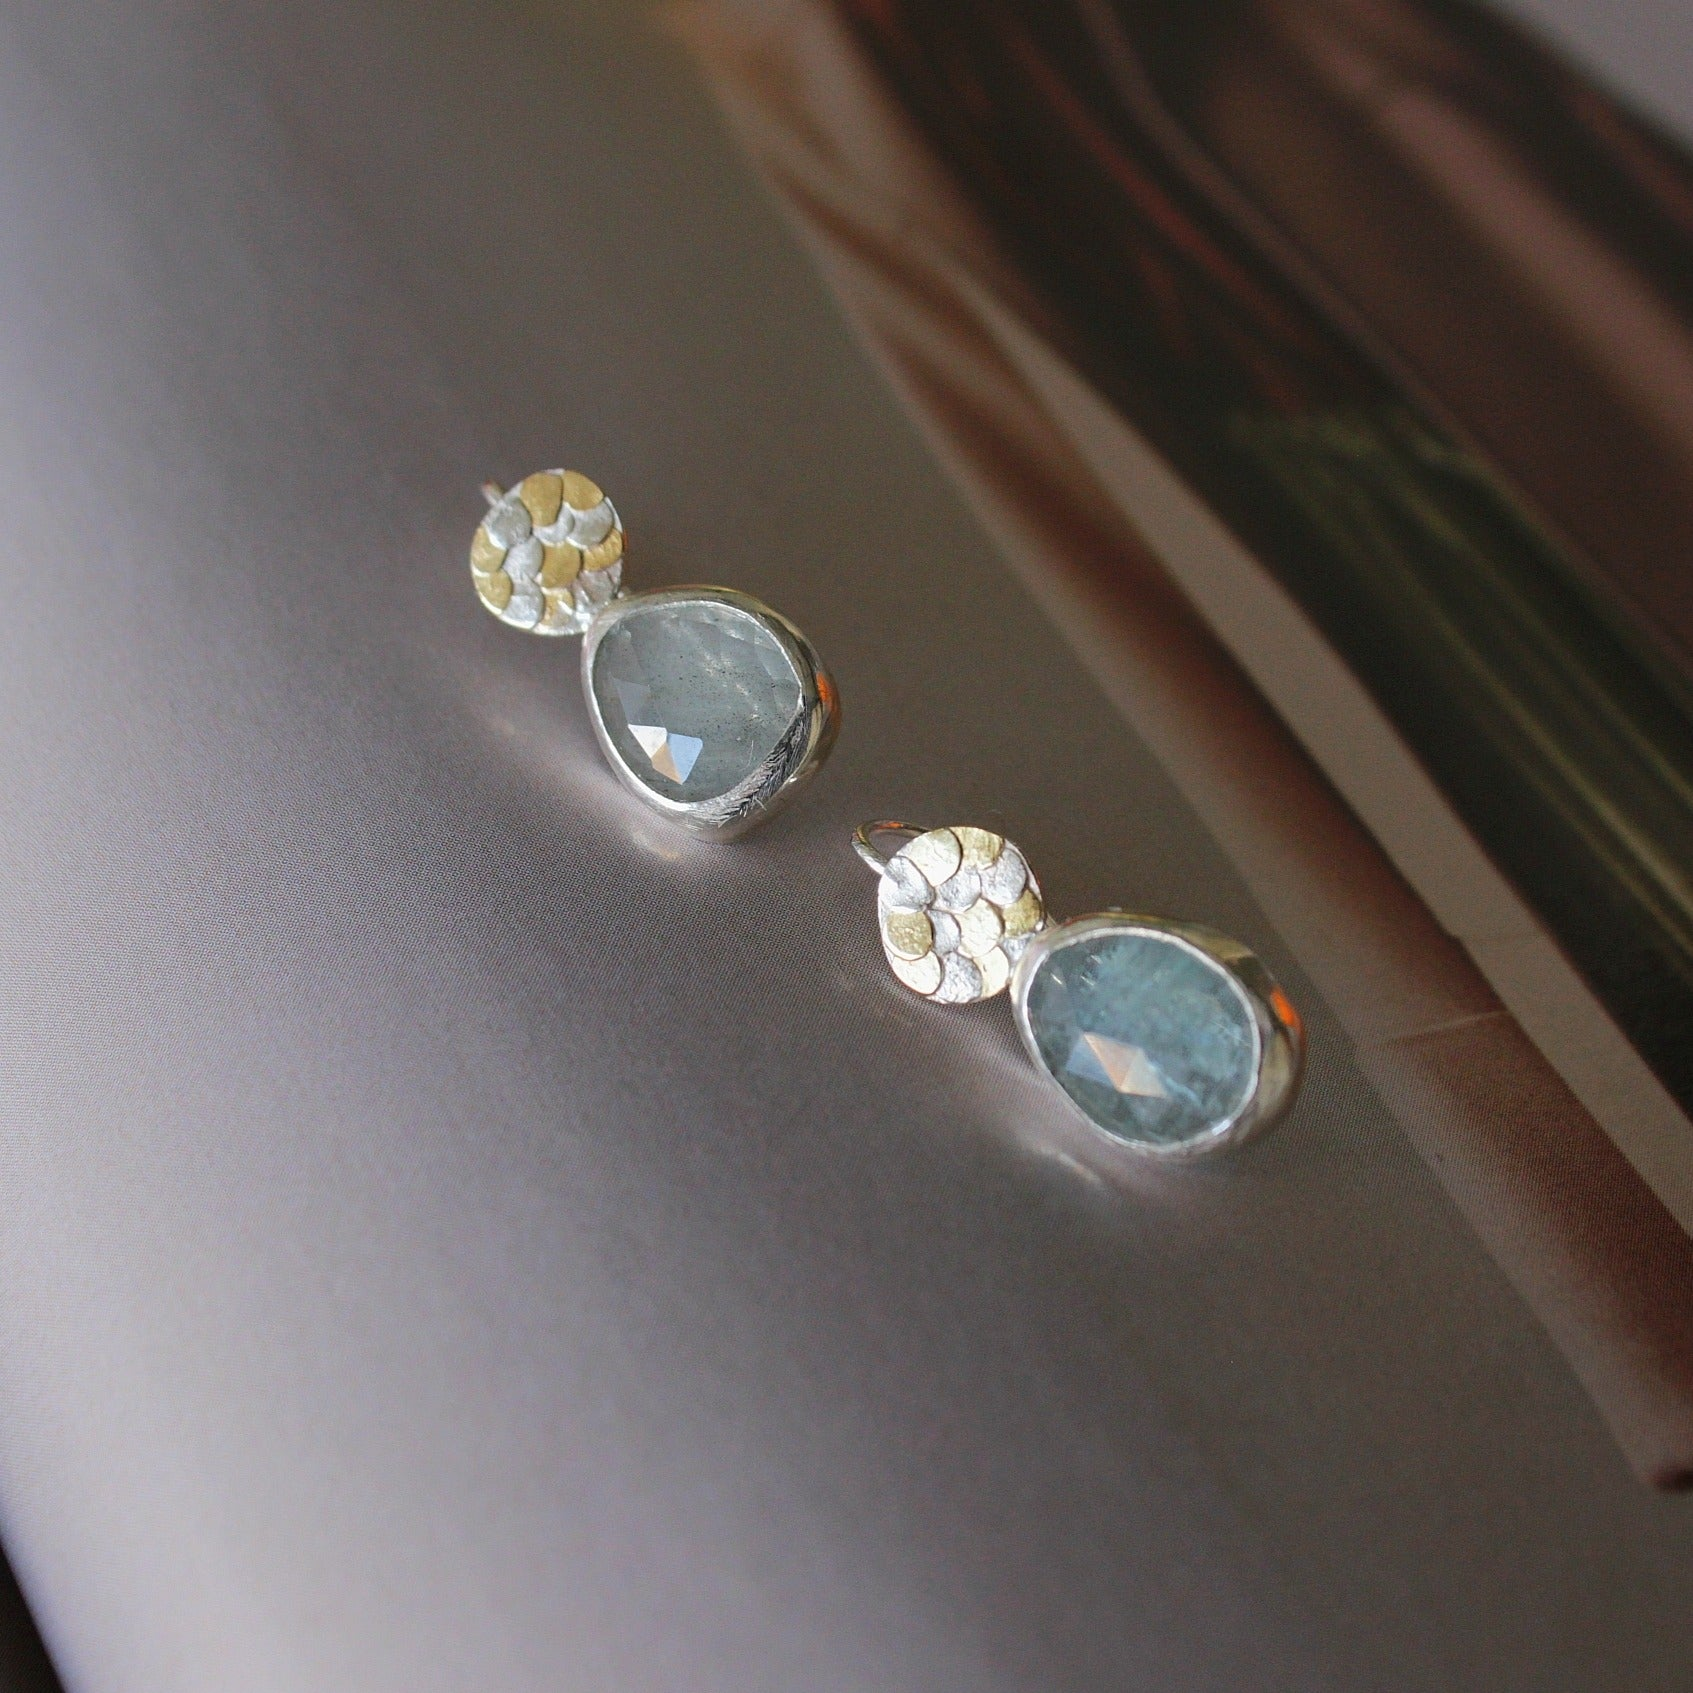 The handcrafted Aquamarine Siren drop earrings by Josie Mitchell Jewellery are one-of-a-kind and completely unique. The vibrant Aquamarines are full of magic and remind us of crystal clear Mediterranean waters. The earrings include Josie's signature Siren scale detailing at the top for the most magical pair of earrings..